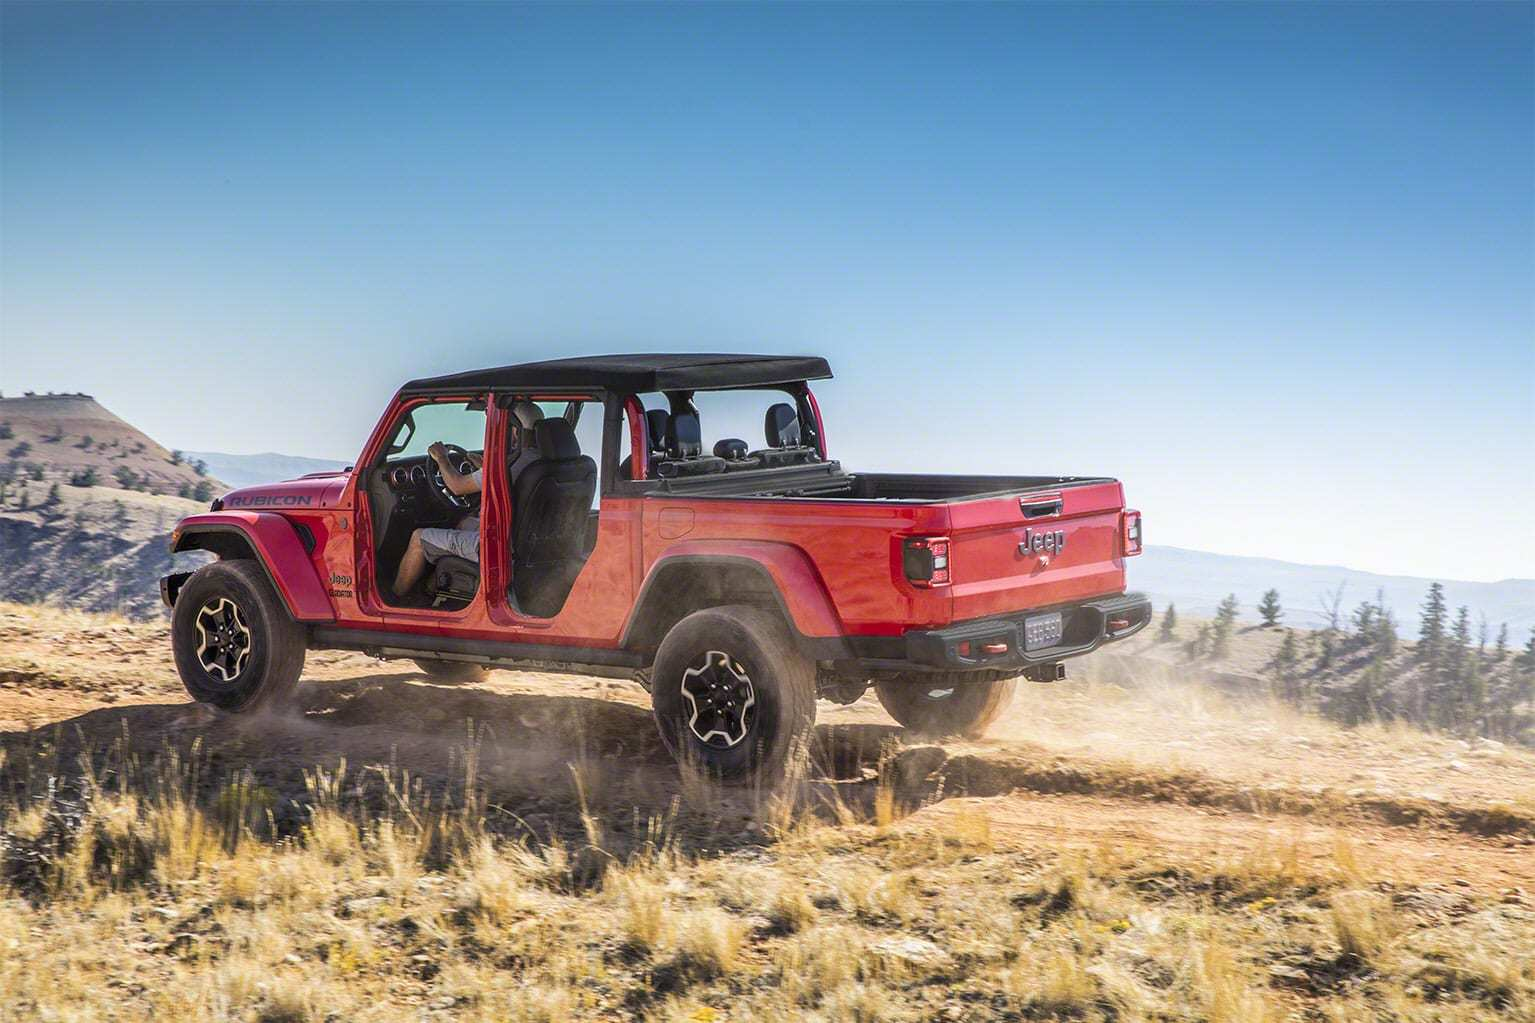 51 The Best Jeep Wrangler Truck 2020 Release Date